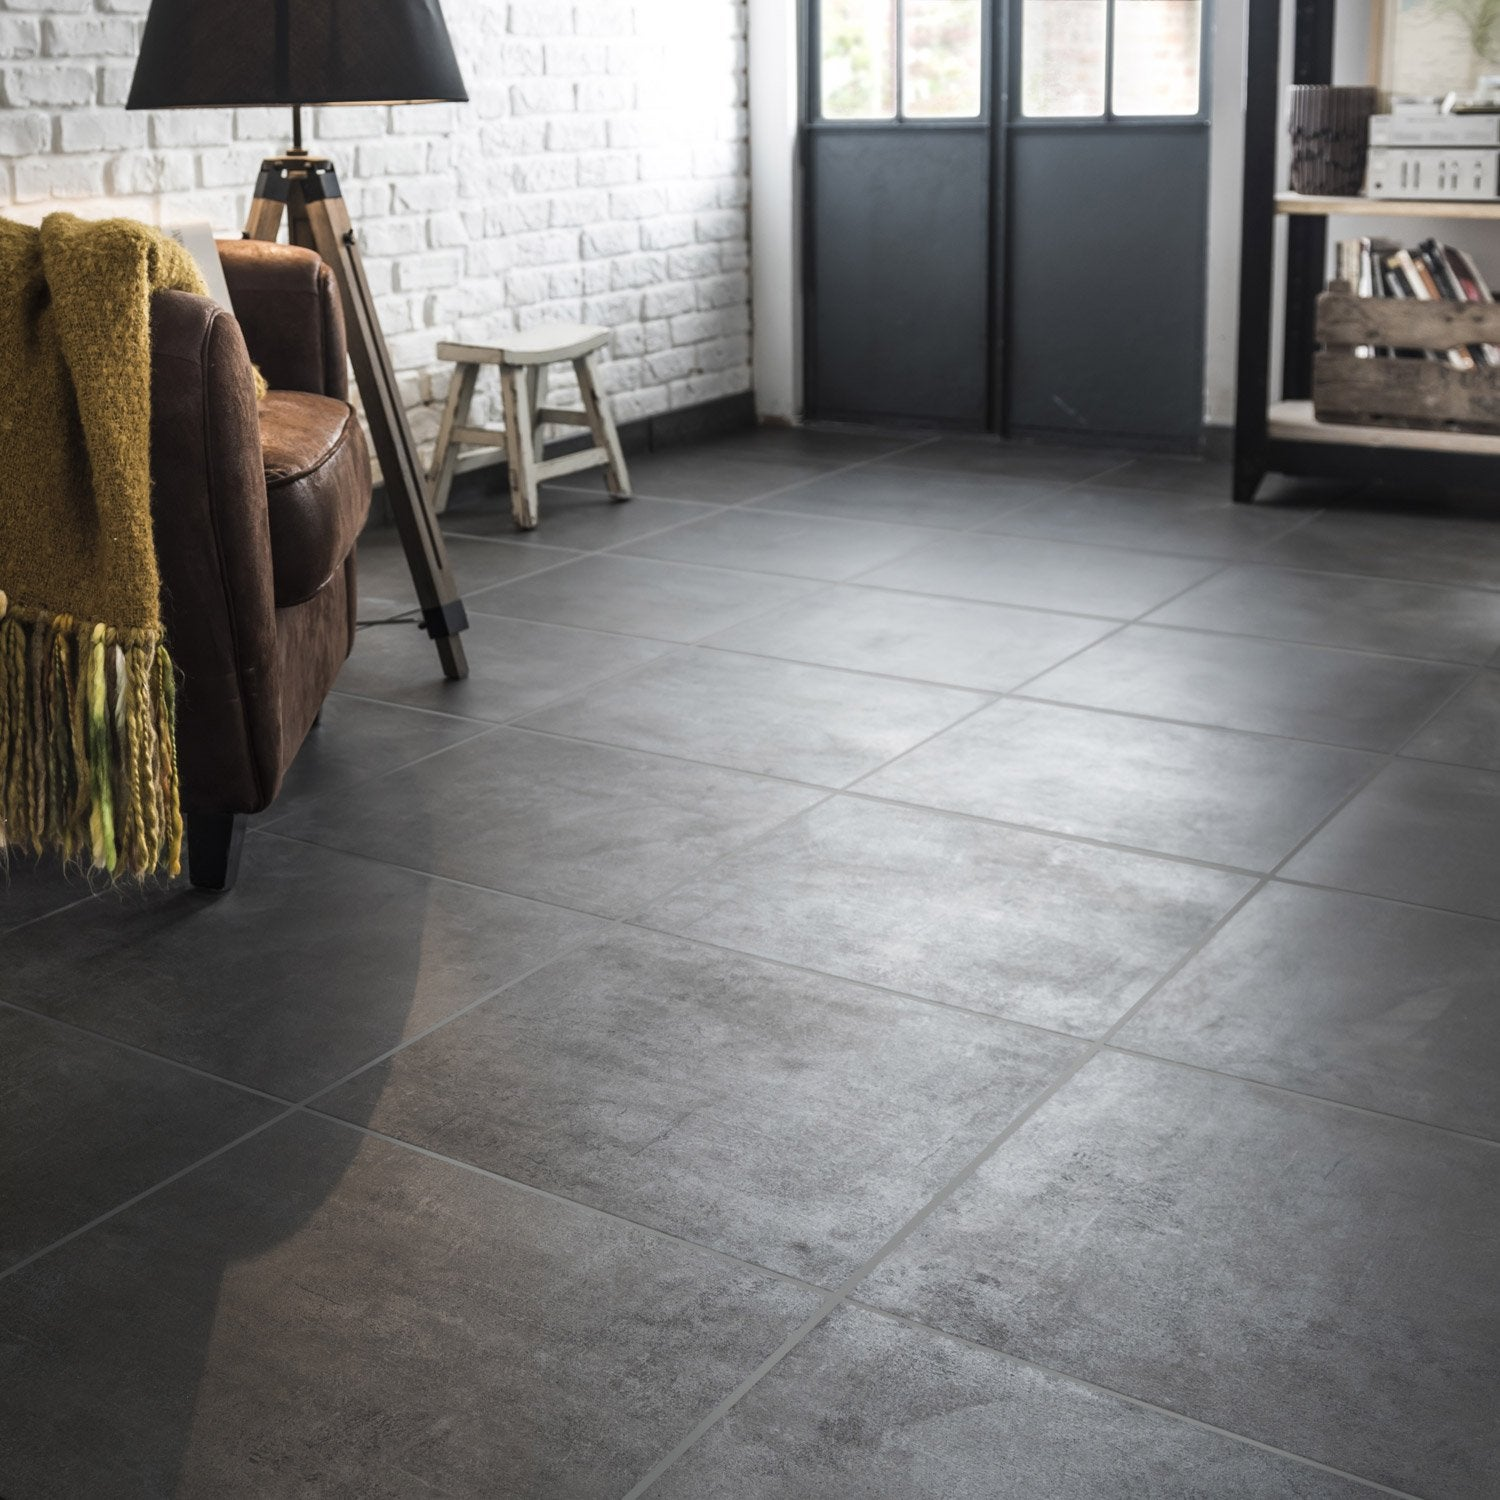 Carrelage sol anthracite effet b ton alma x cm for Carrelage sol gris anthracite